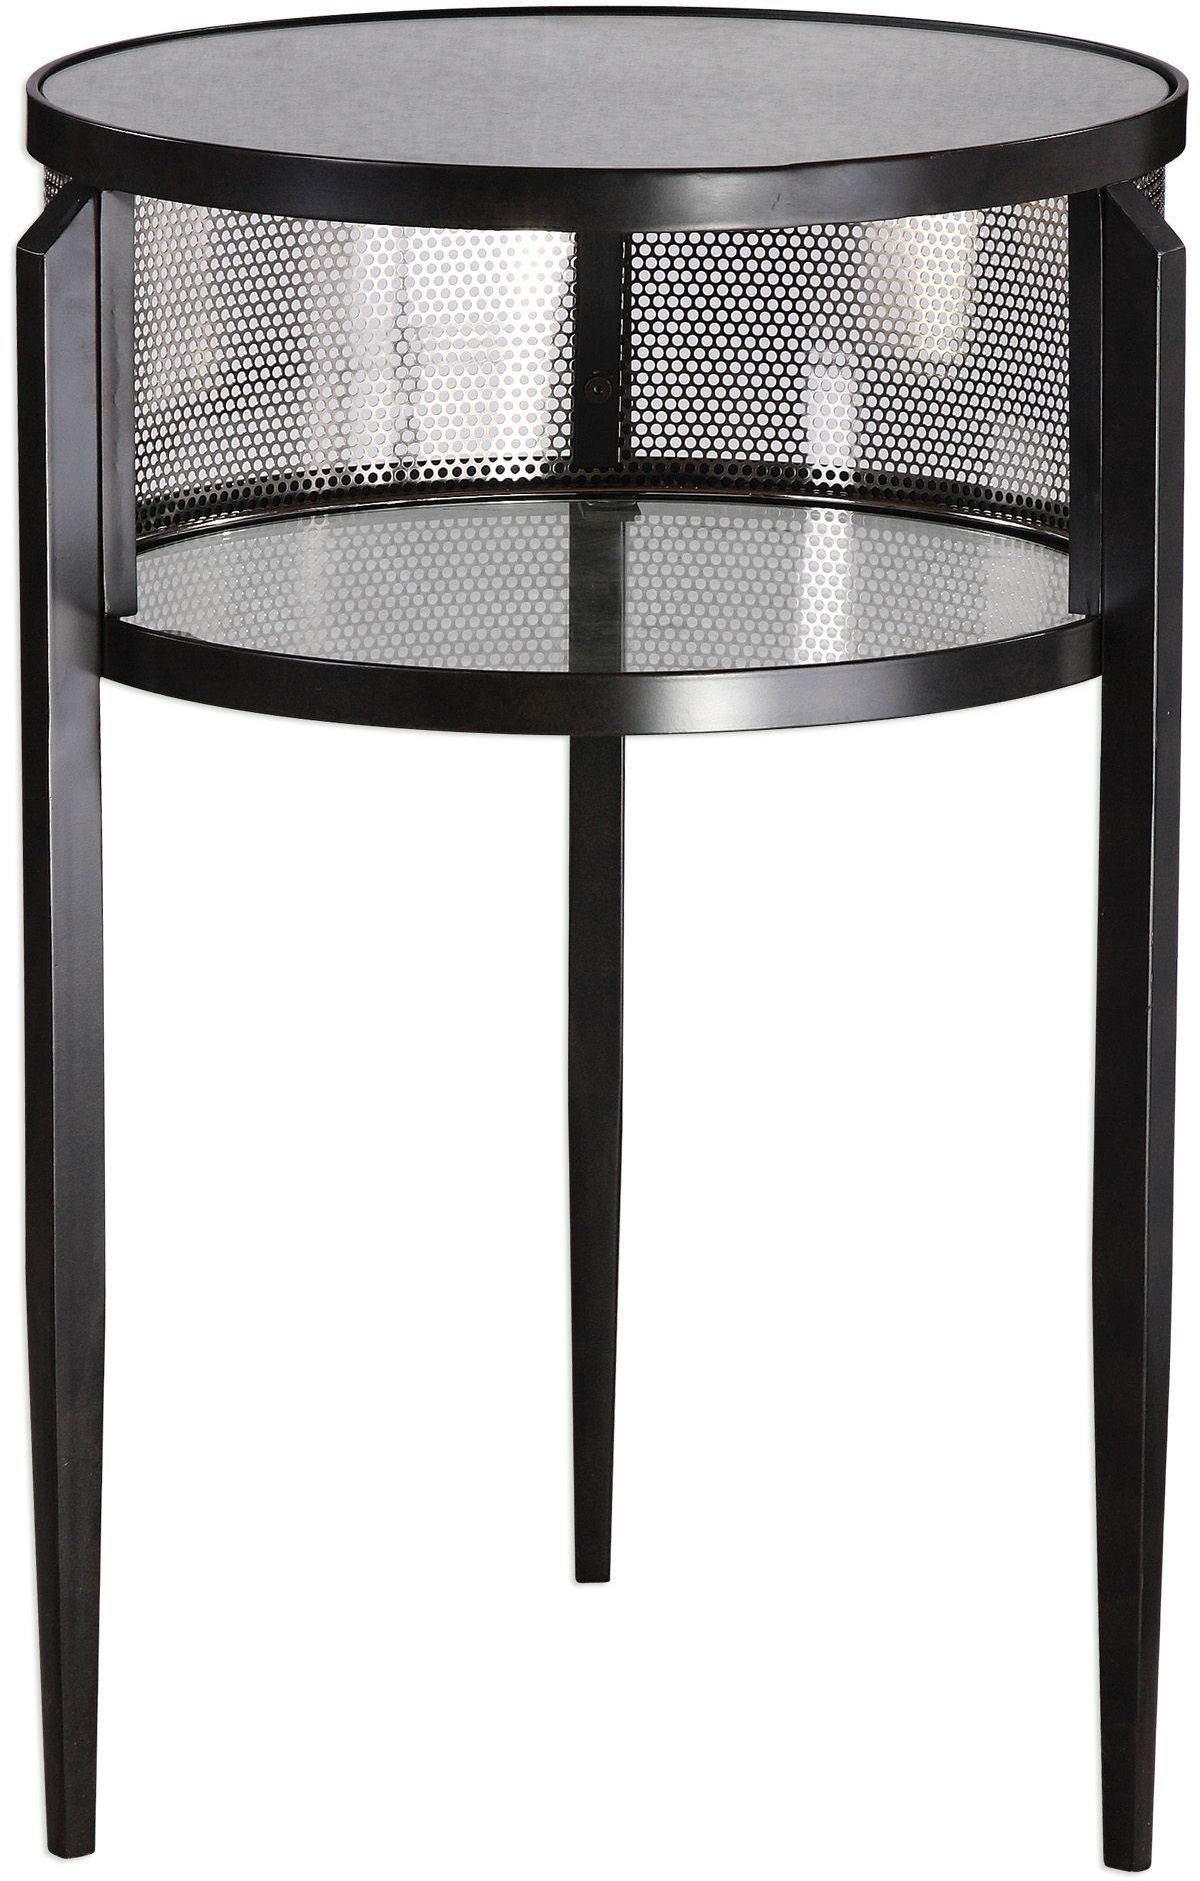 This Drum Style Accent Table Is Finished In Aged Black Iron With Intended For Gunmetal Perforated Brass Media Console Tables (View 22 of 30)